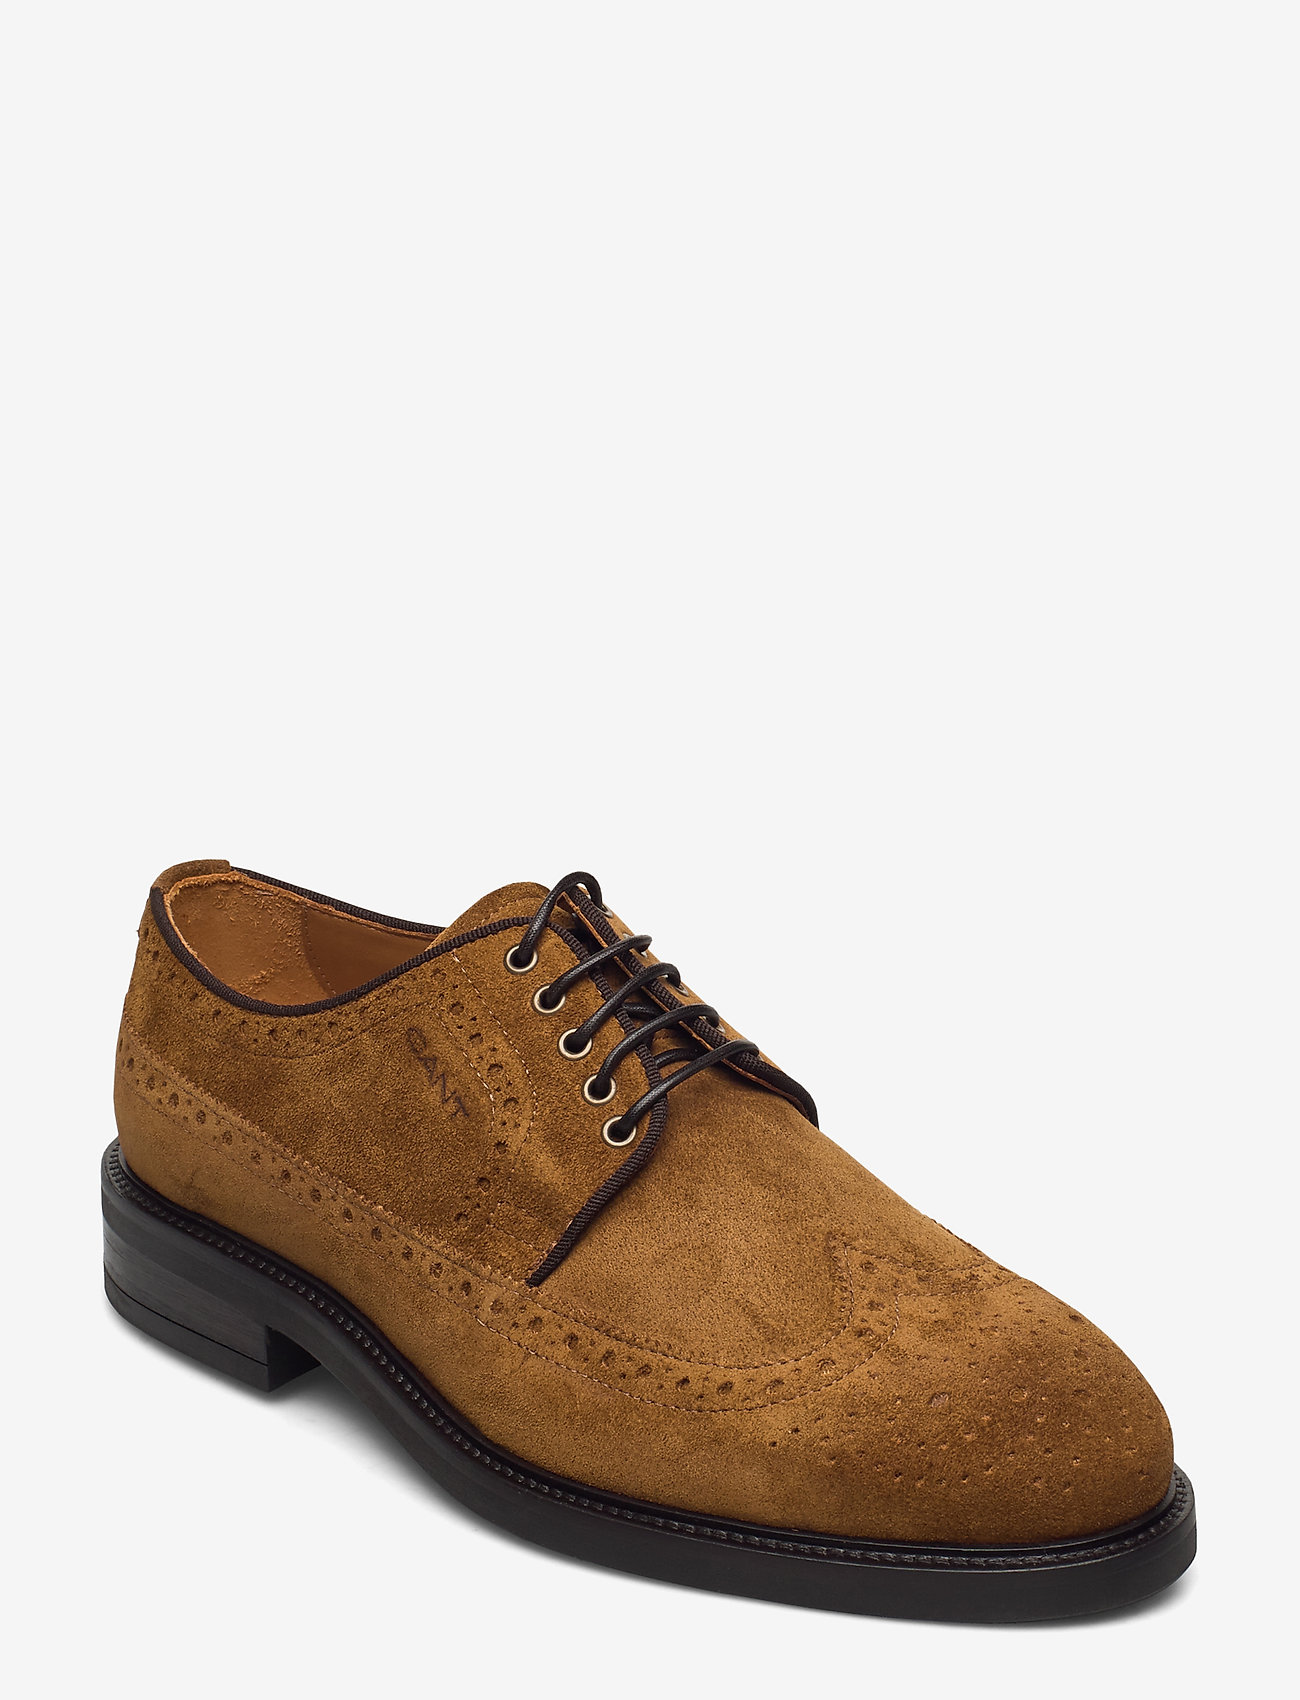 GANT - Flairville Low laceshoes - laced shoes - tobacco brown - 0